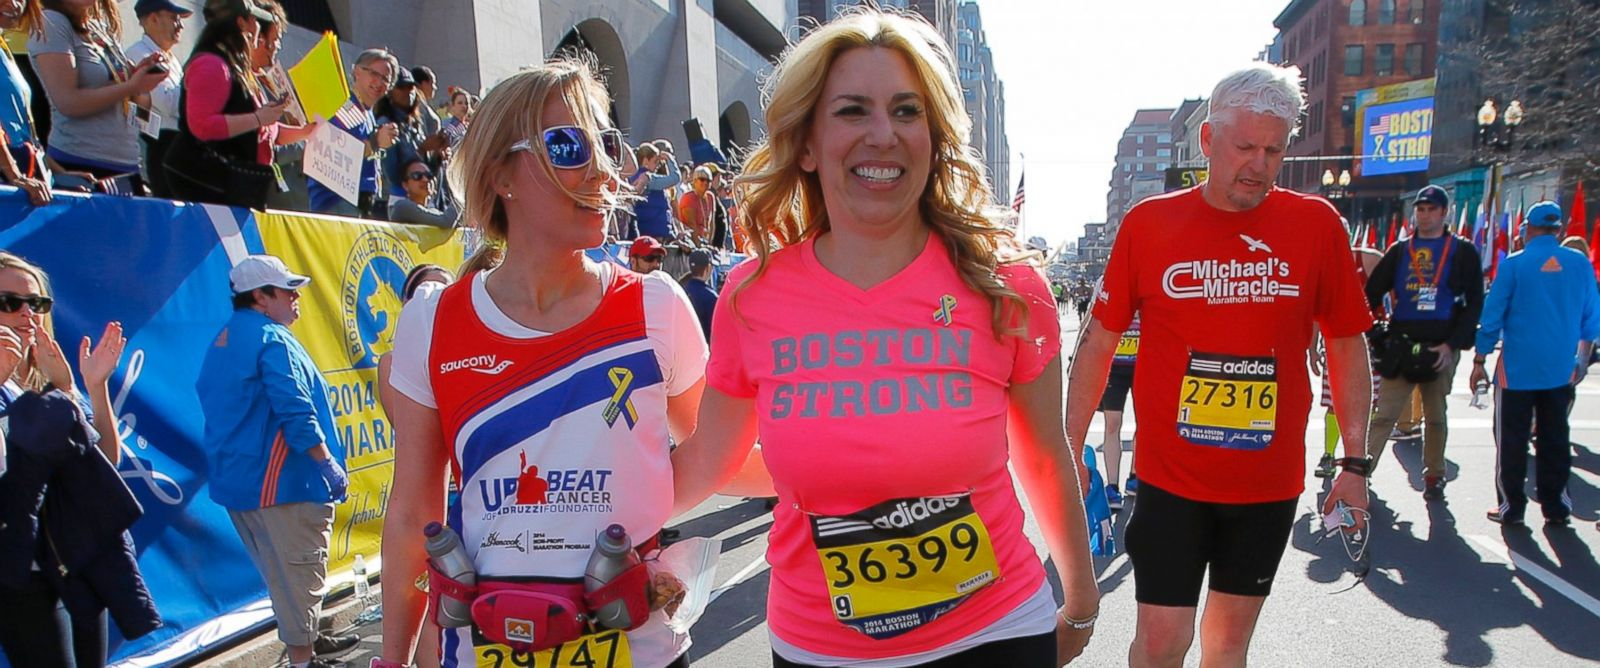 PHOTO: 2013 Boston Marathon survivor Heather Abbott, right, finishes the 118th Boston Marathon with Erin Chatham, one of the people who helped rescue Abbott and who ran the race this year in Boston, April 21, 2014.